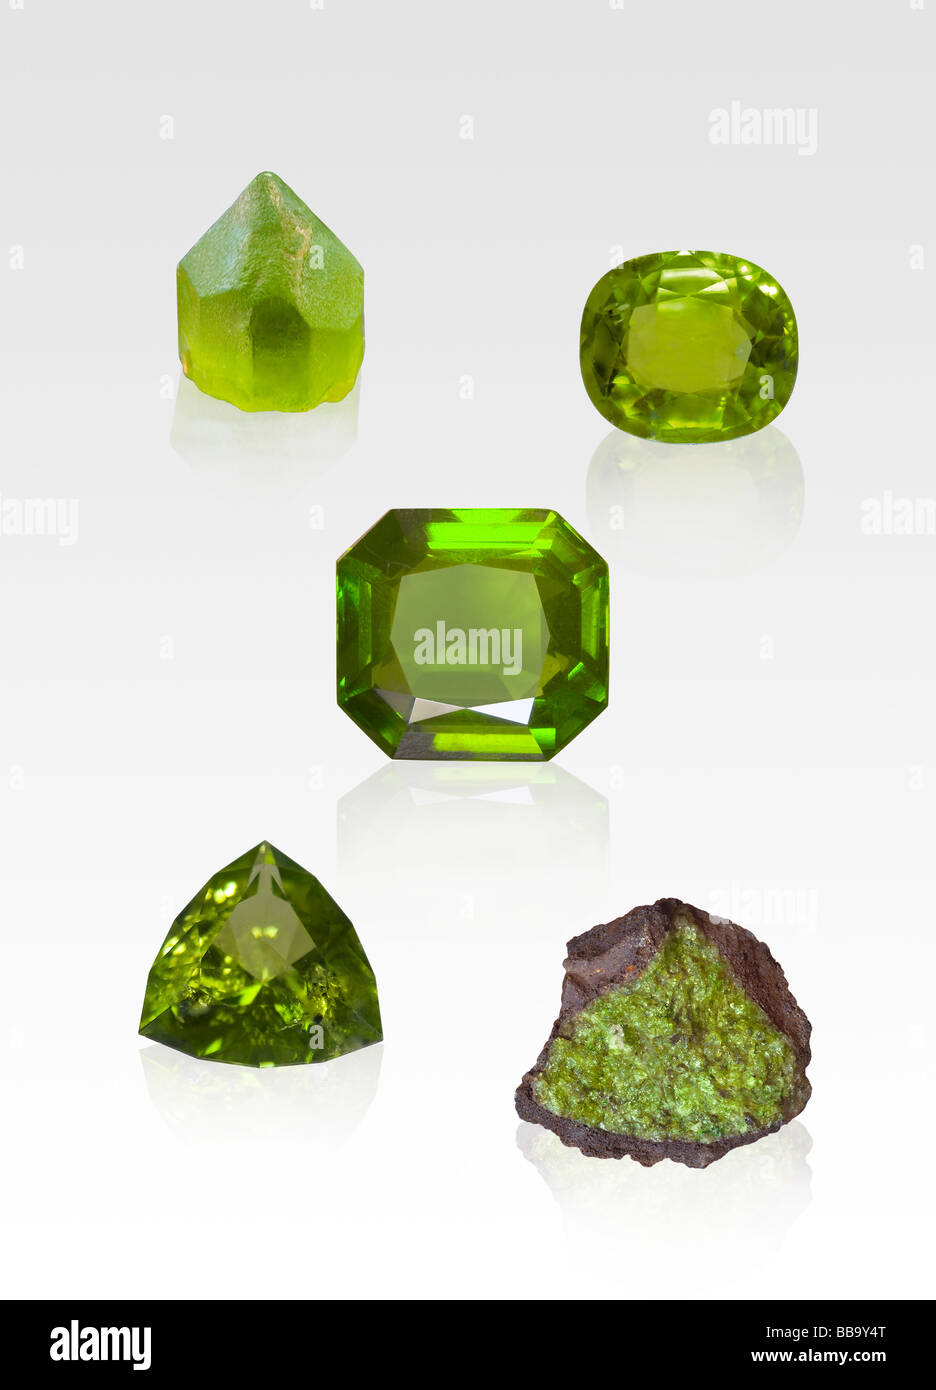 Peridot gem and crystal specimens on white background - Stock Image